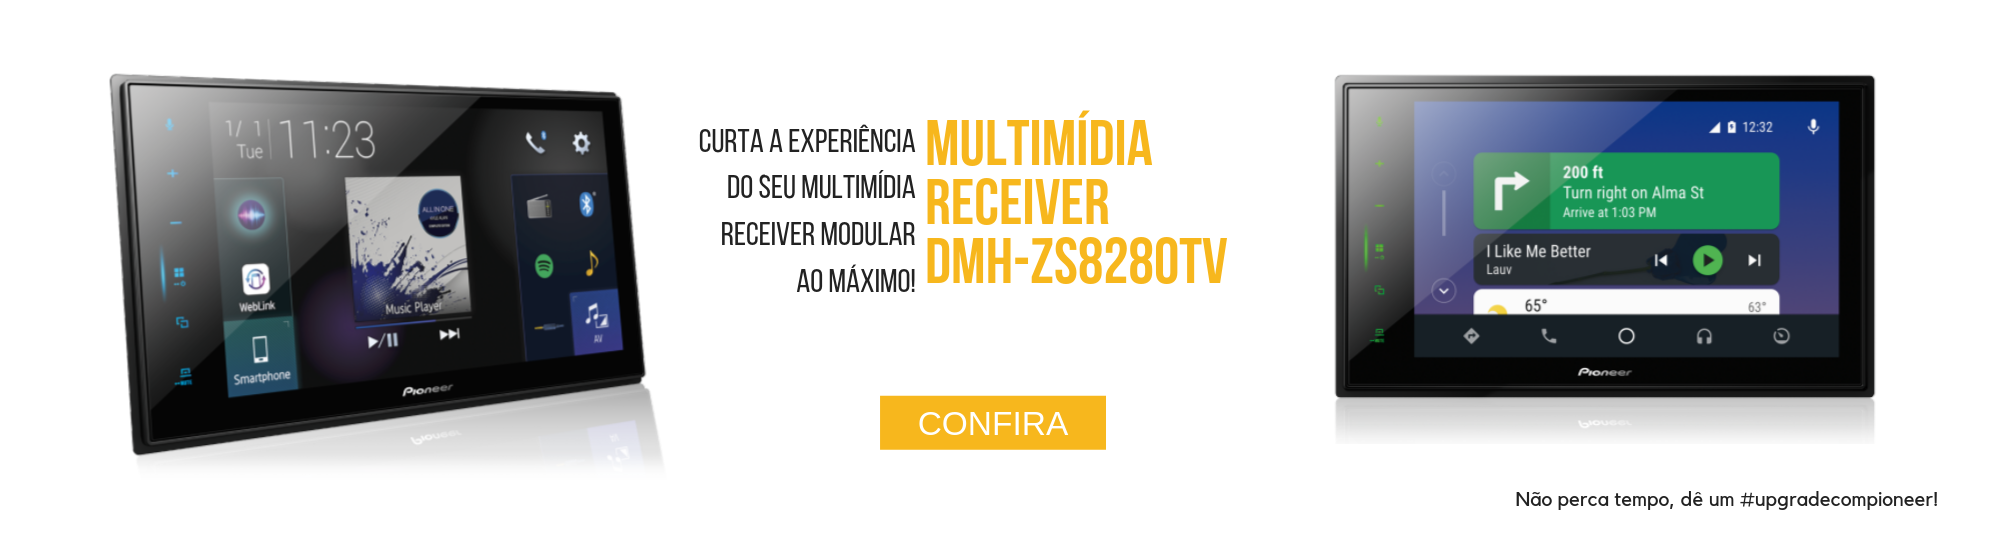 central multimídia receiver pioneer dmh-zs8280tv 2din 8